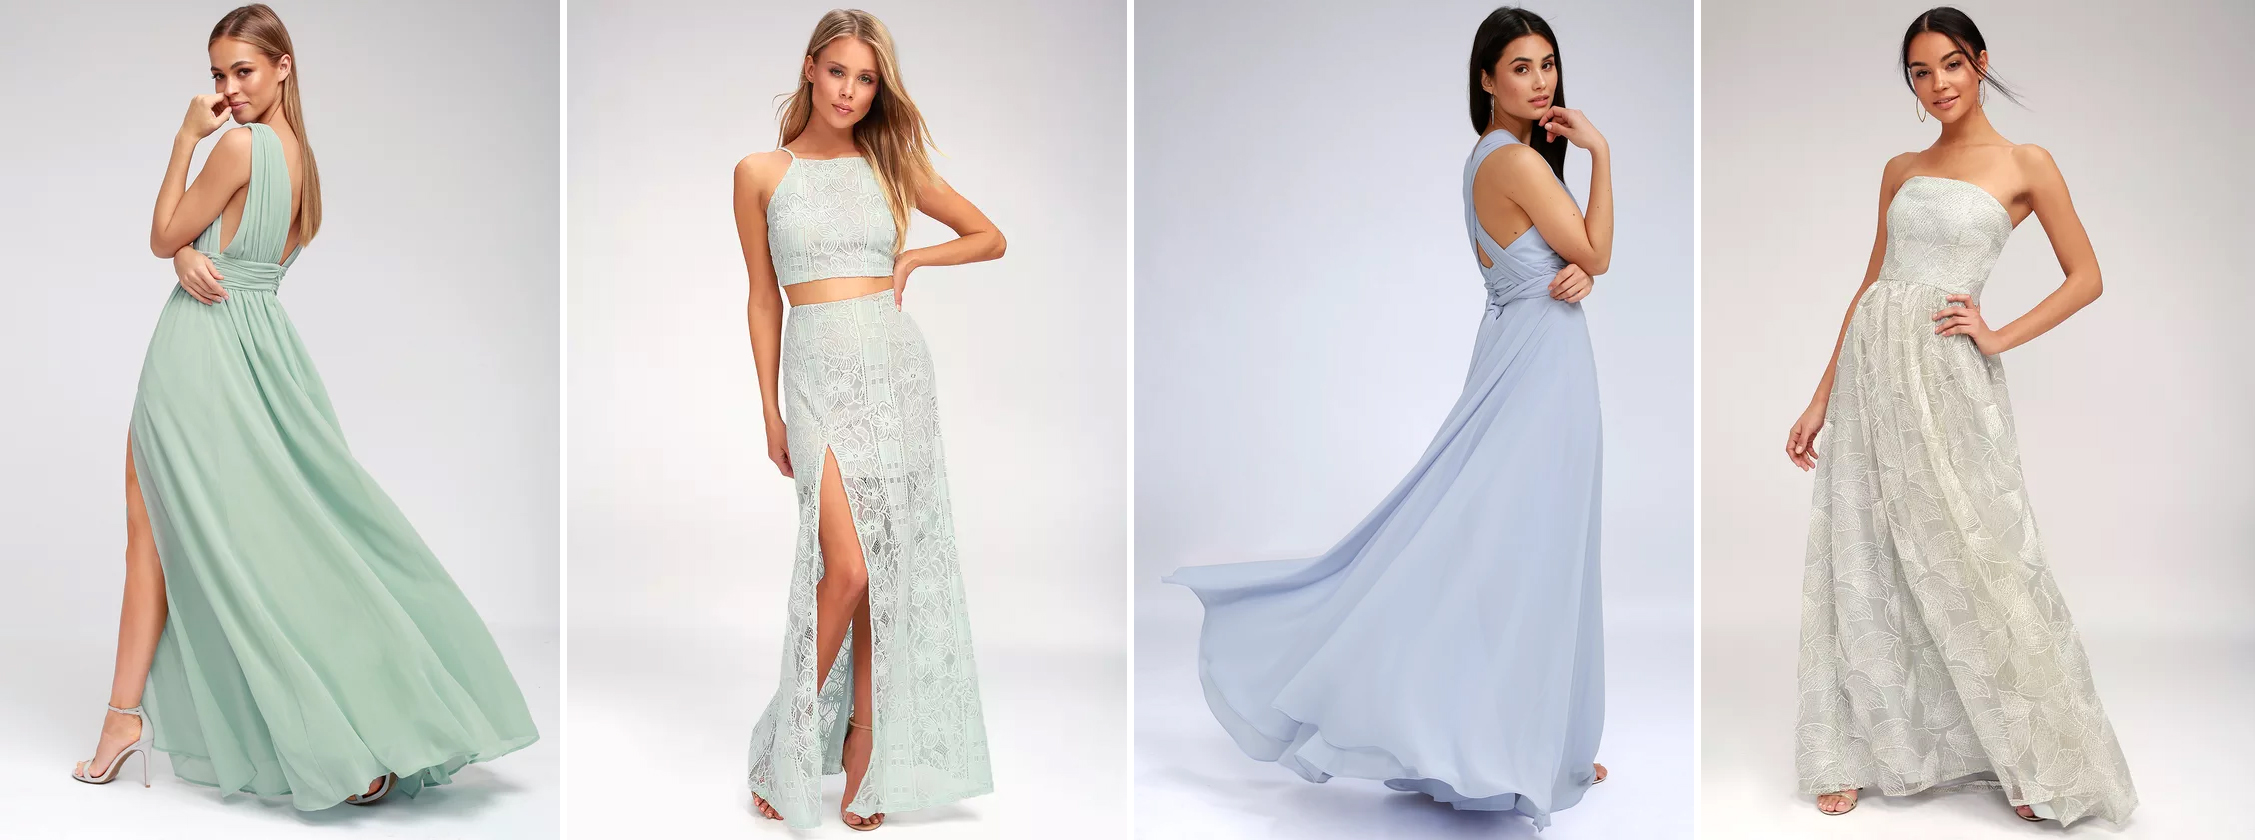 Prom Dresses Market Research Report- Forecast to 2024 | PMR